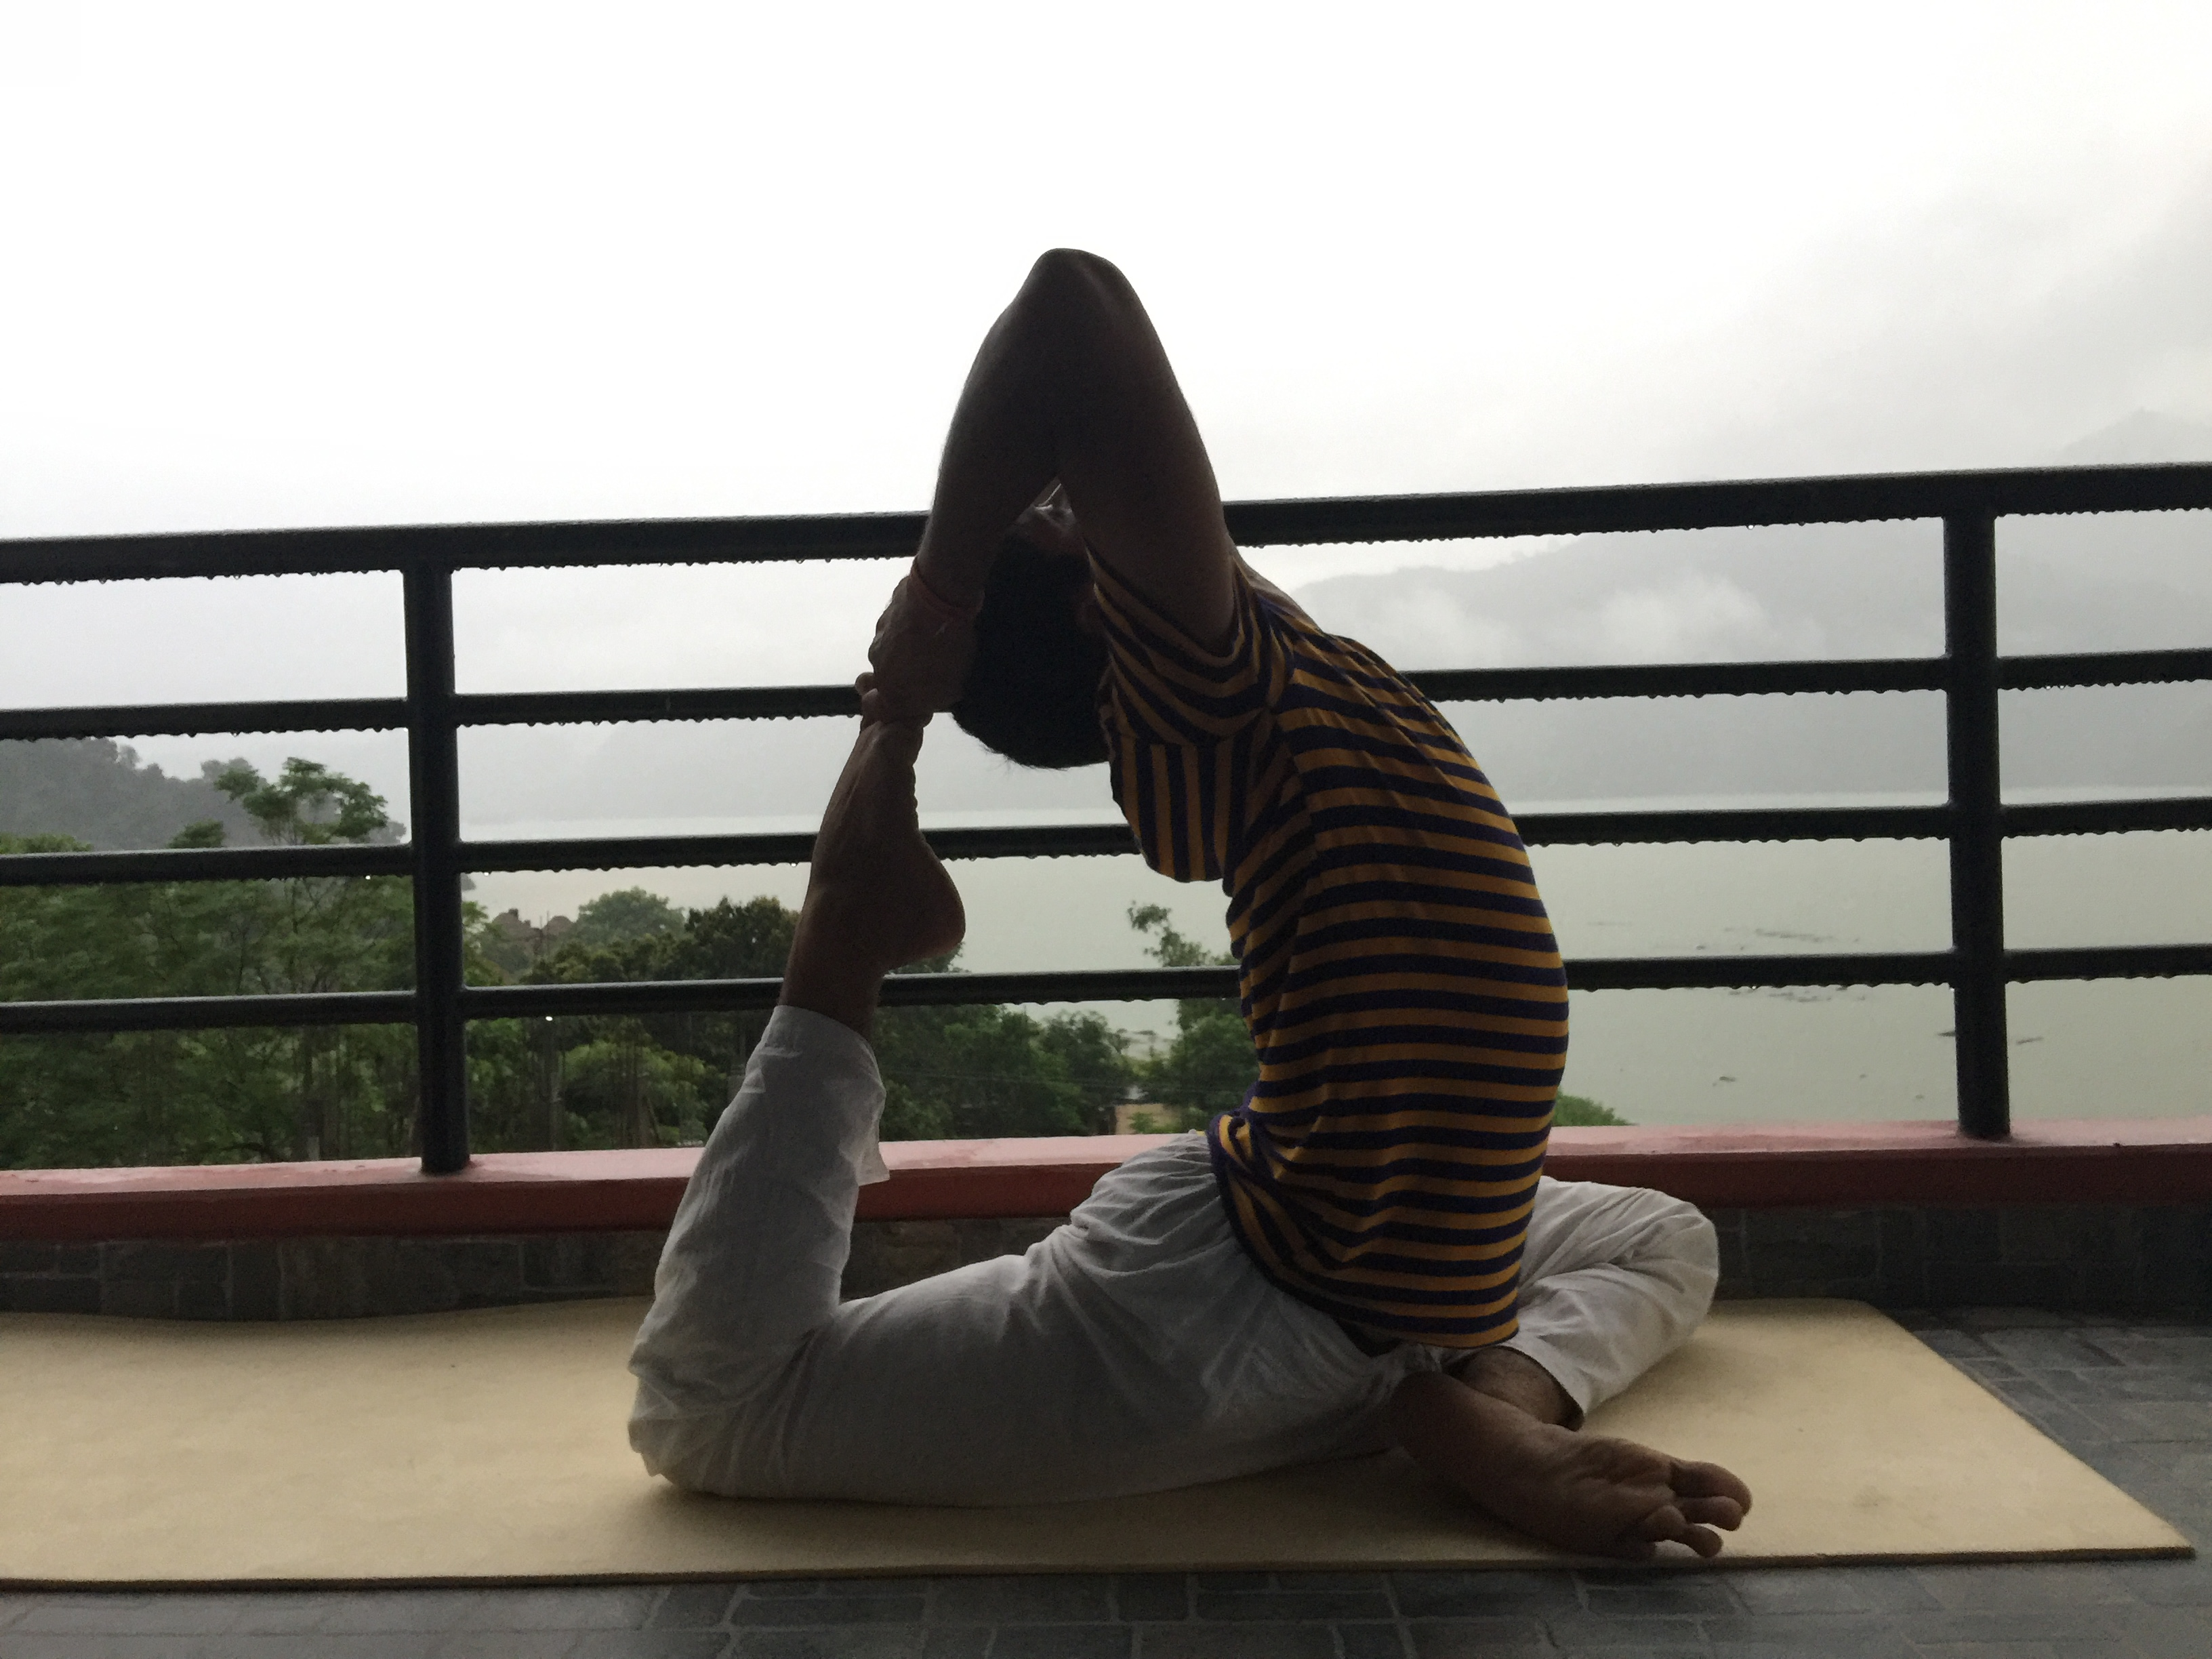 8D/7N Yoga Immersion Retreat